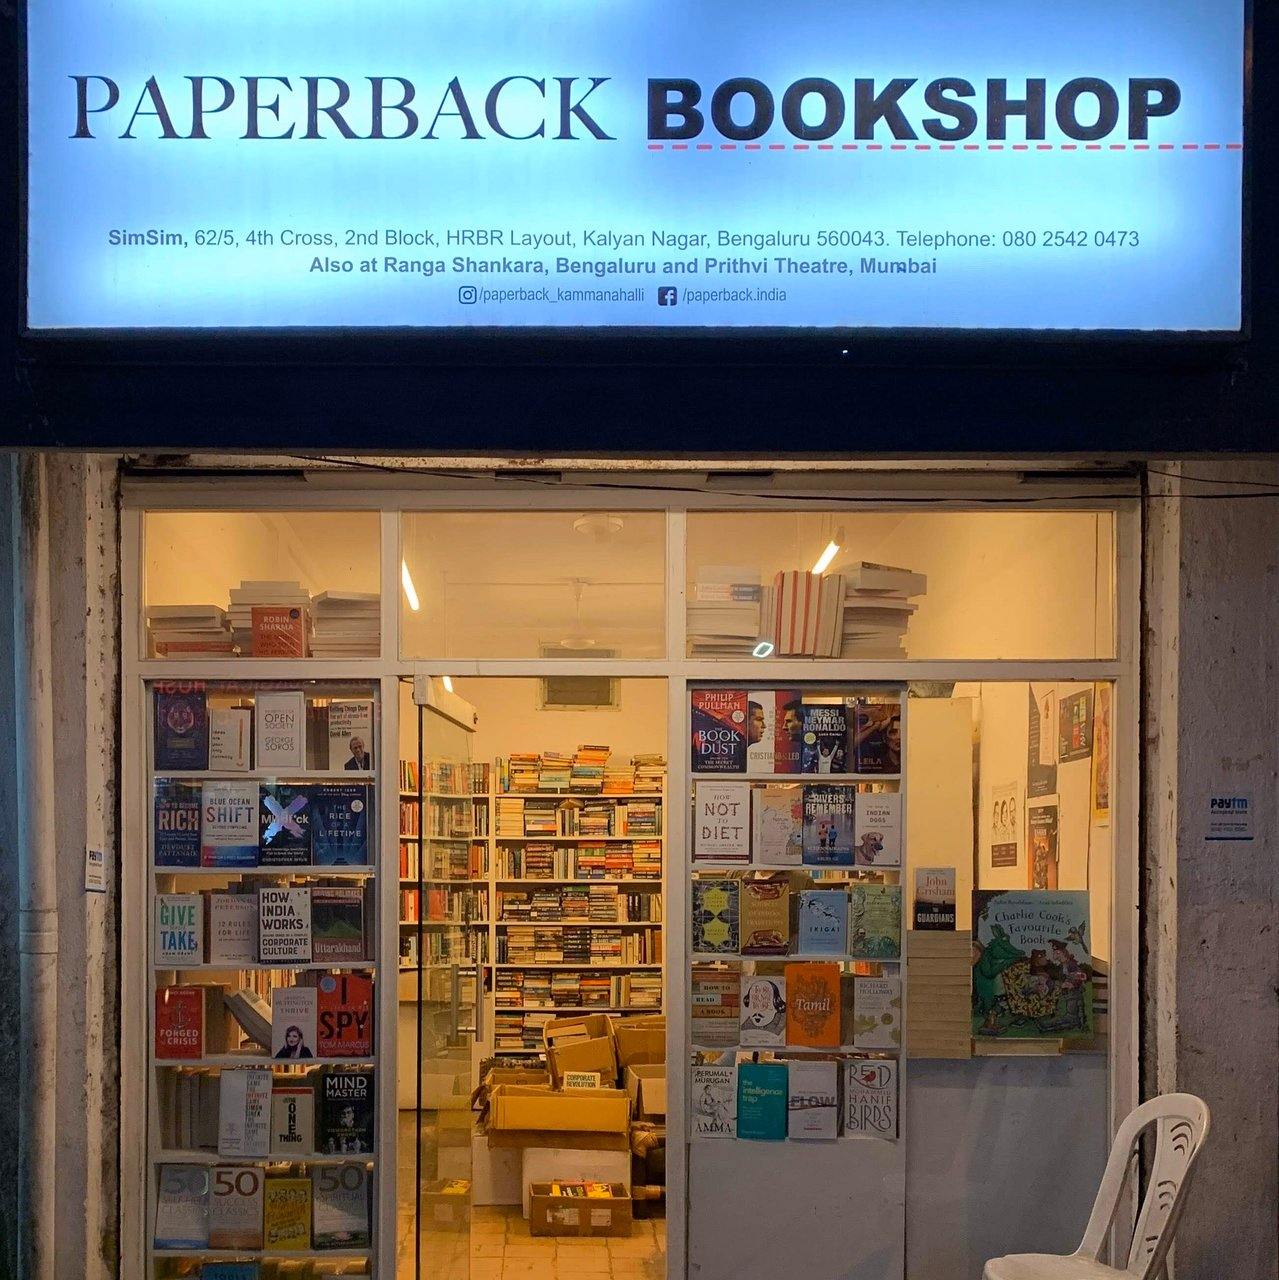 Paperback Bookshop (Bengaluru) - 2020 What to Know Before You Go ...